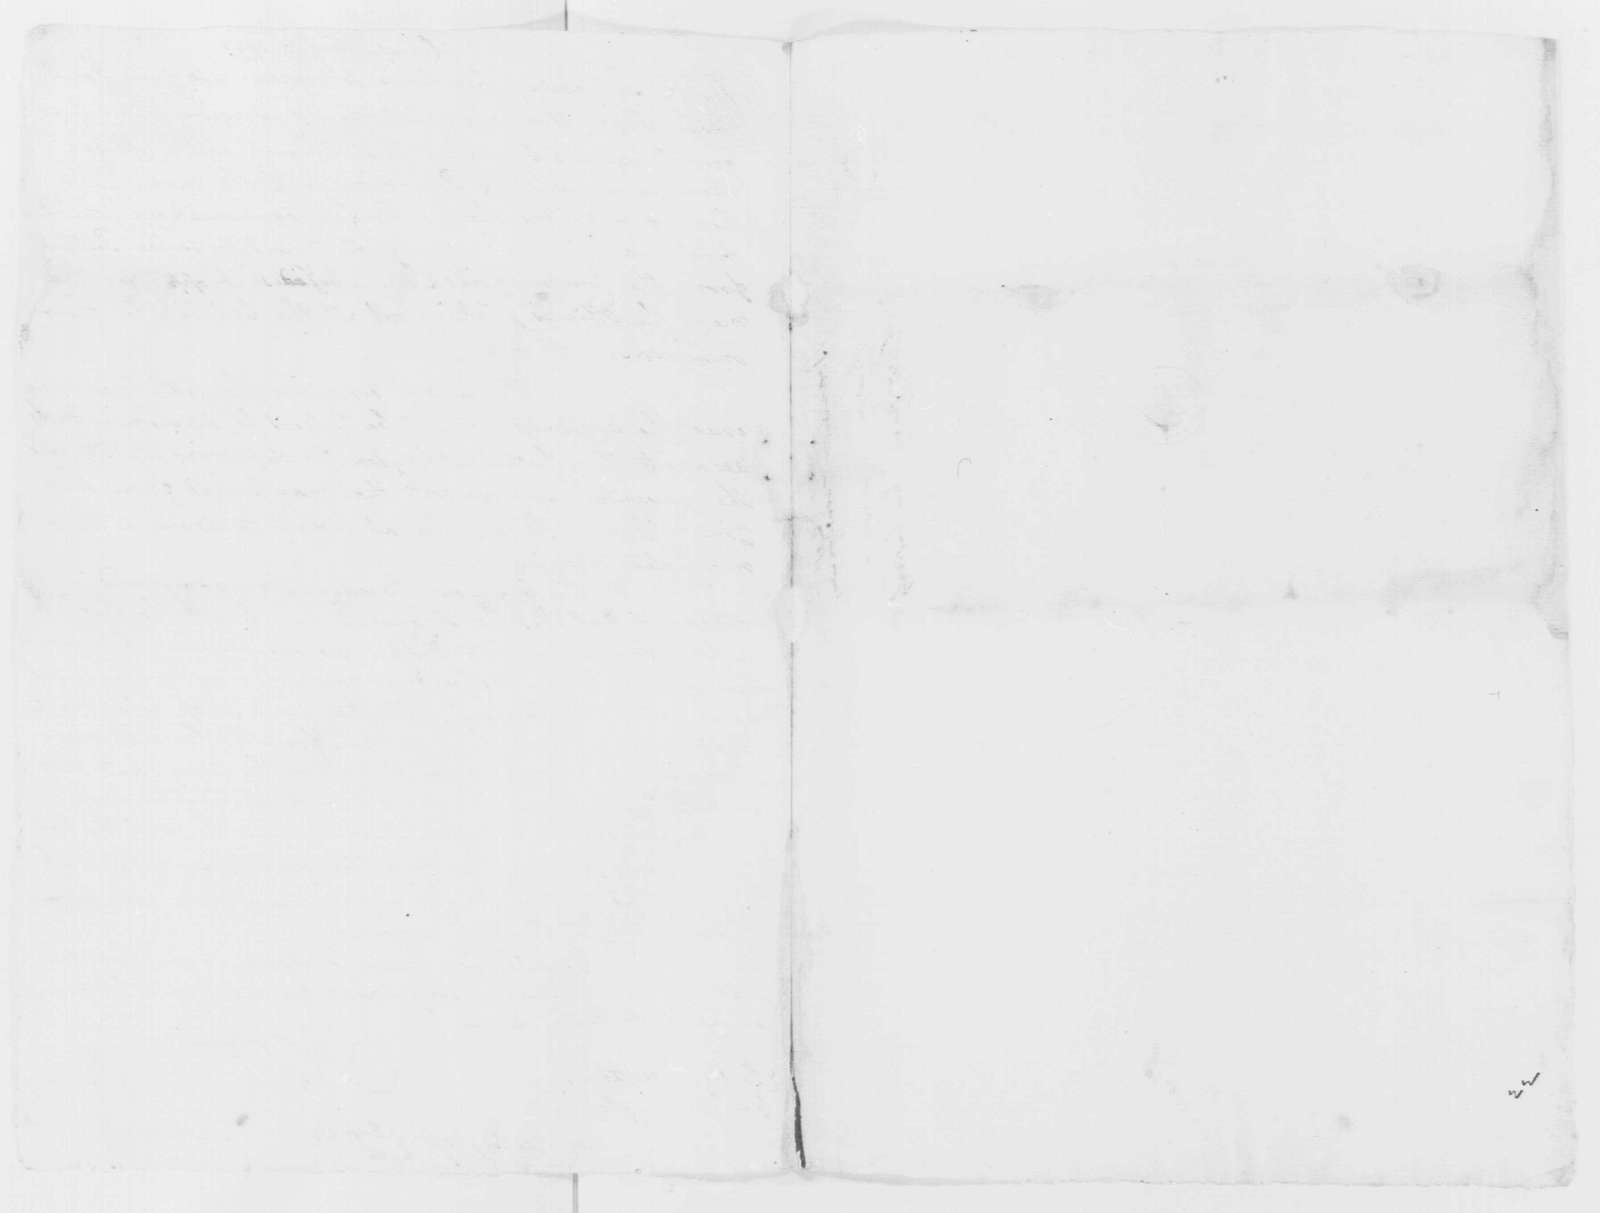 George Washington Papers, Series 4, General Correspondence: Continental Army General Officers Board to George Washington, August 7, 1777, Proceedings at Germantown; with Responses and Opinions